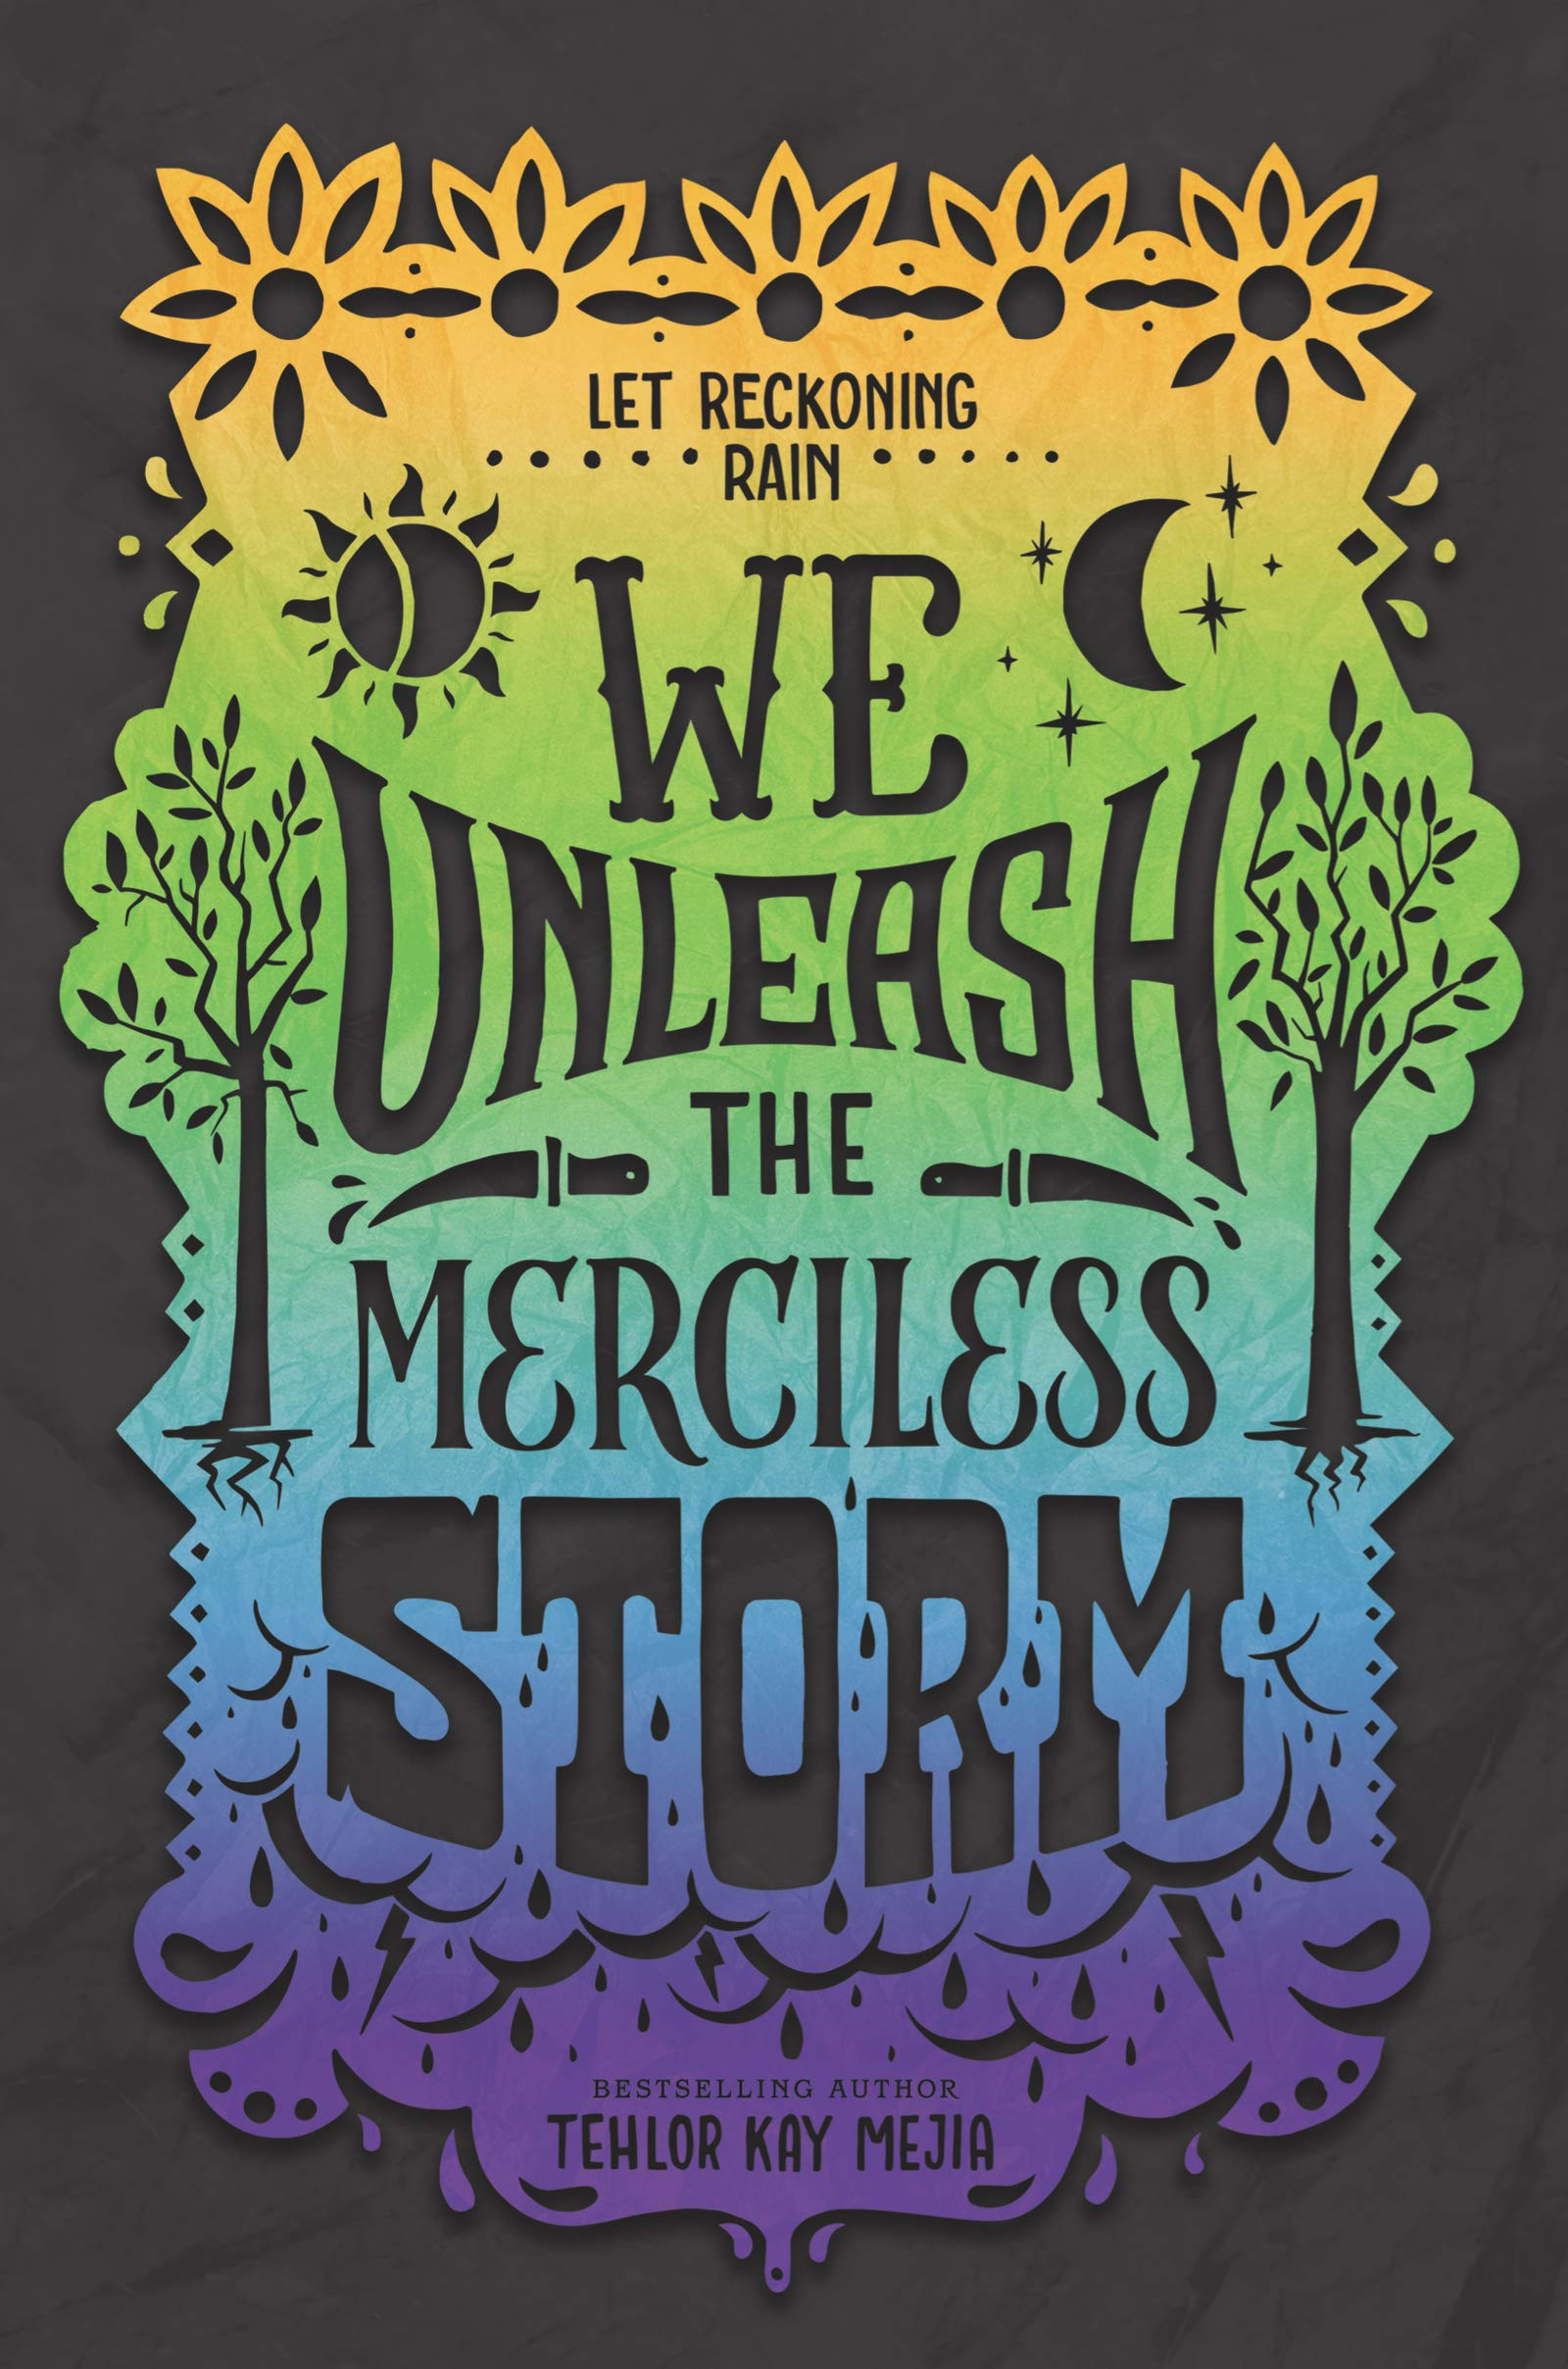 Amazon.com: We Unleash the Merciless Storm (We Set the Dark on Fire)  (9780062691347): Mejia, Tehlor Kay: Books